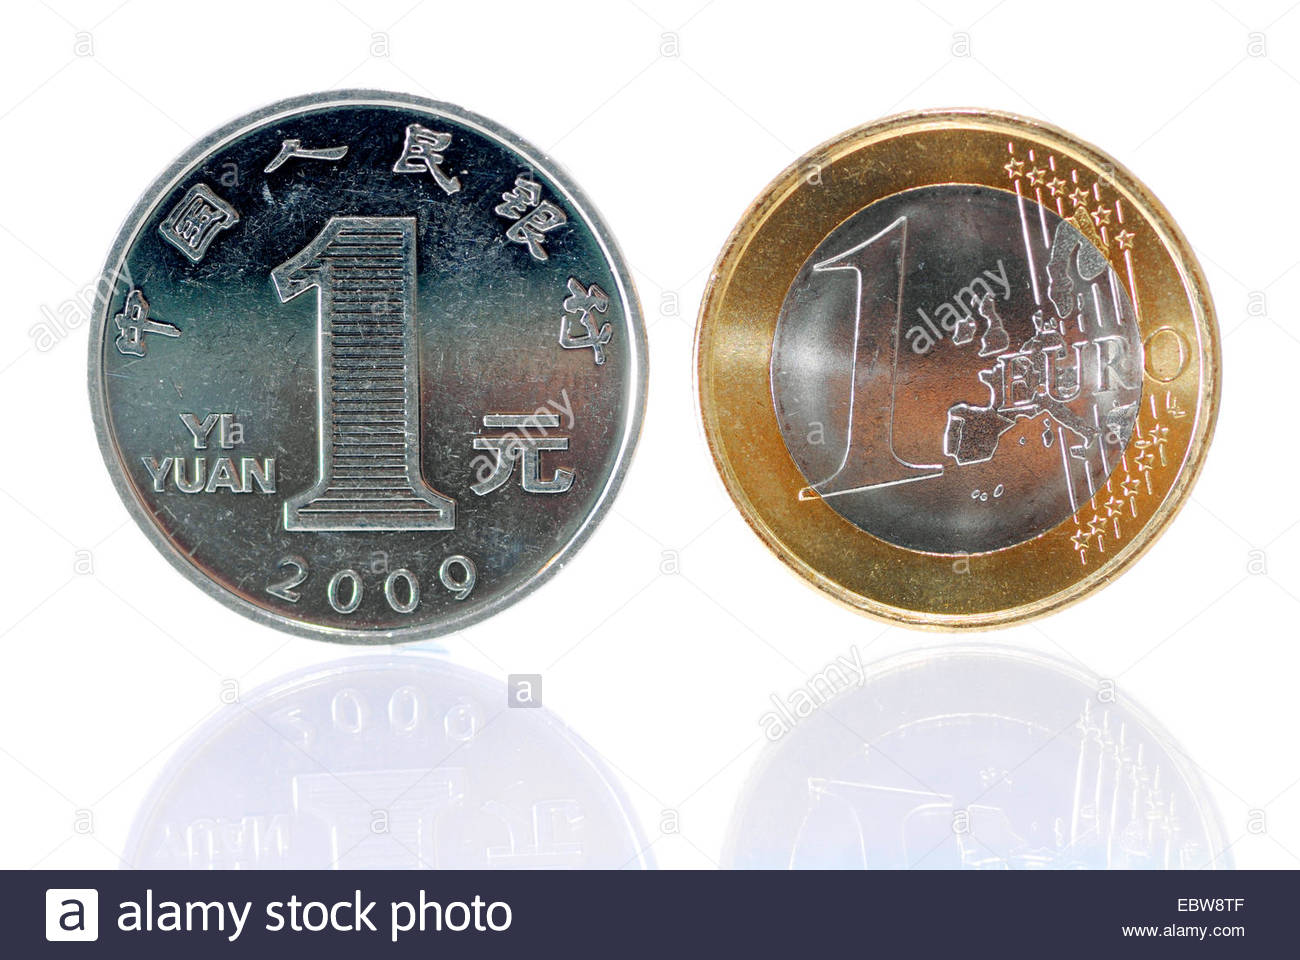 1 Yuan coin (chinese currency) and 1 Euro coin, development of economy in China and Europa - Stock Image